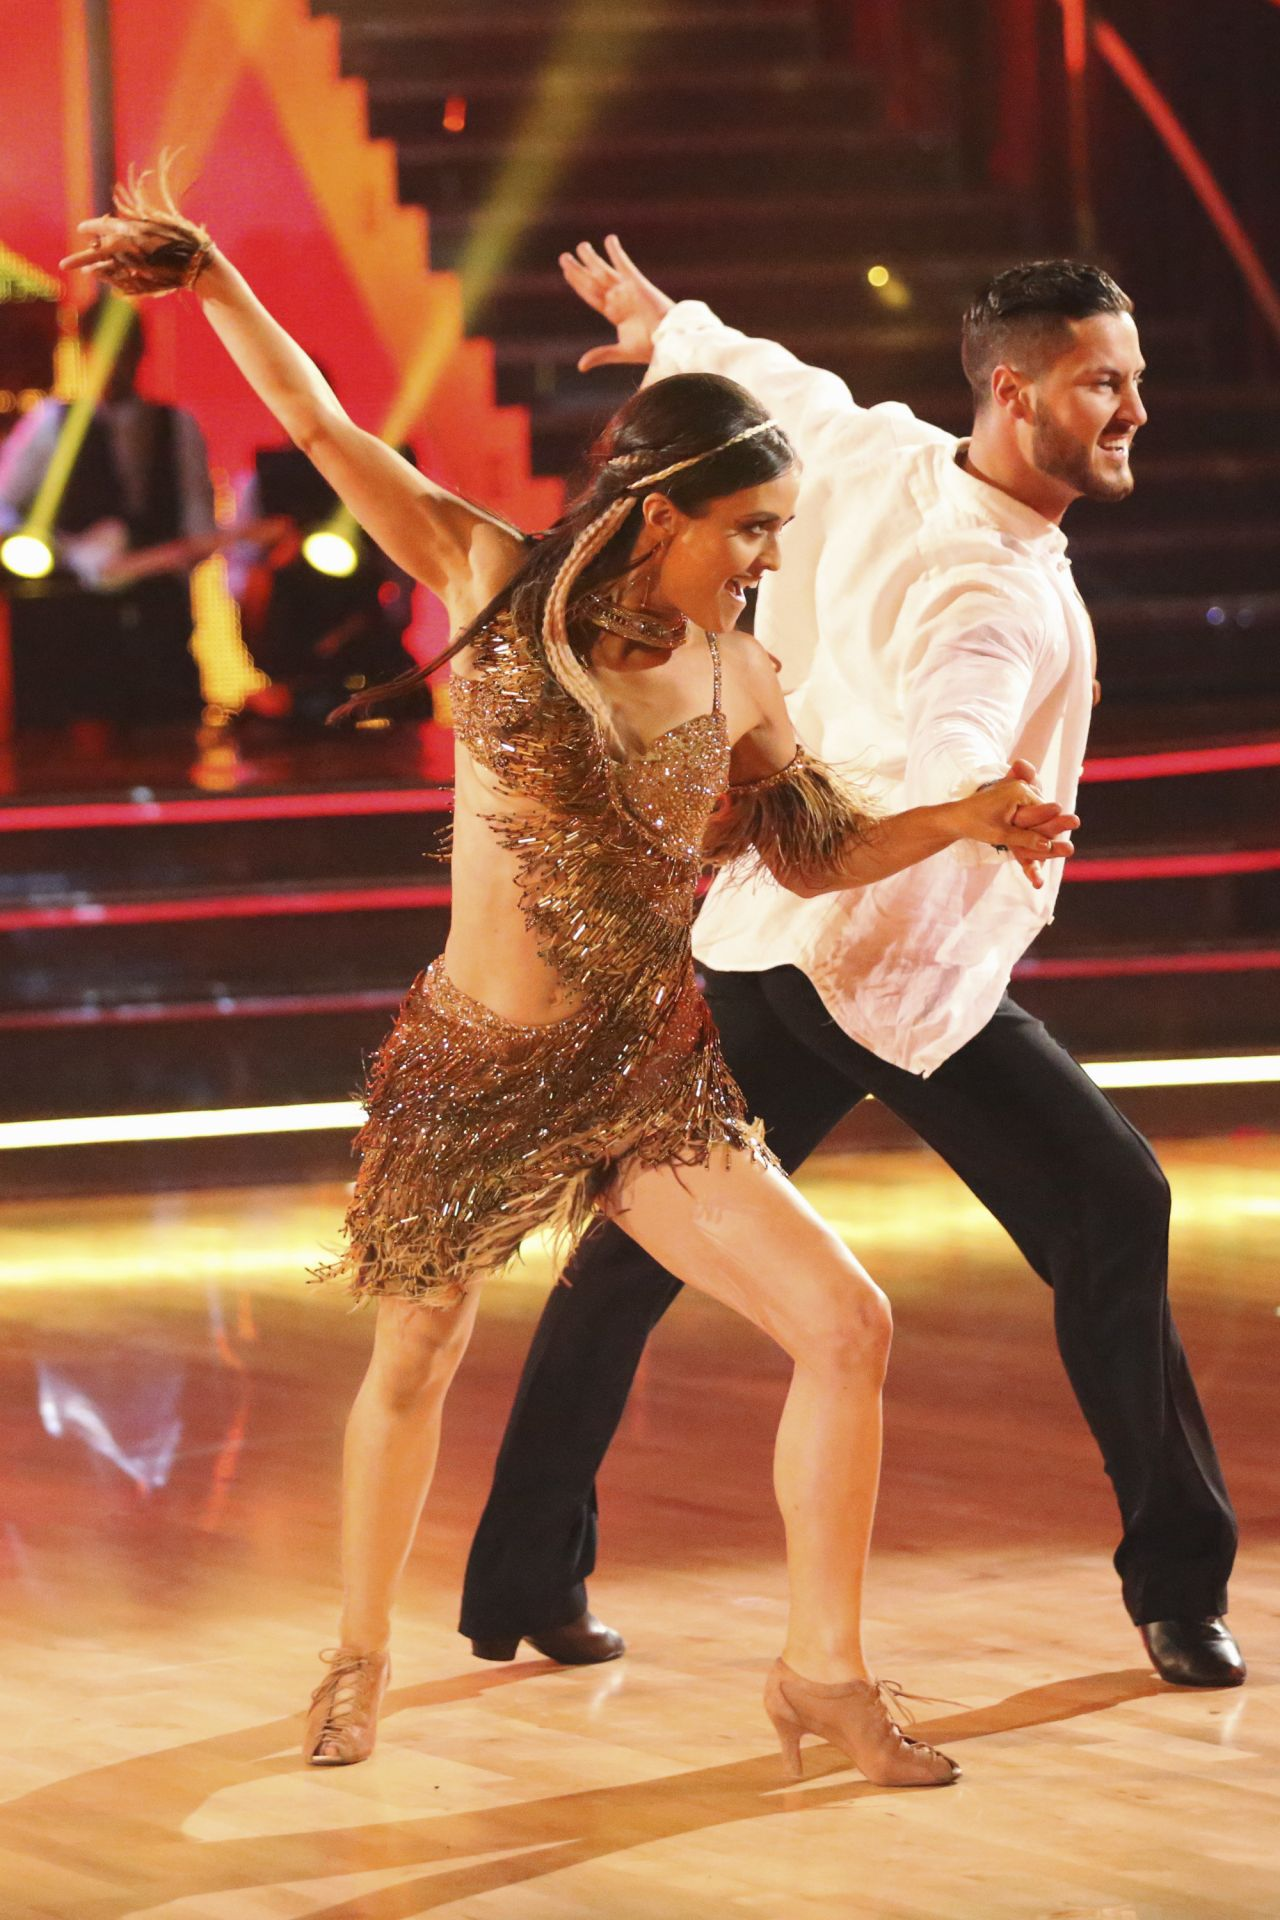 from Van dating dancing with the stars 2014